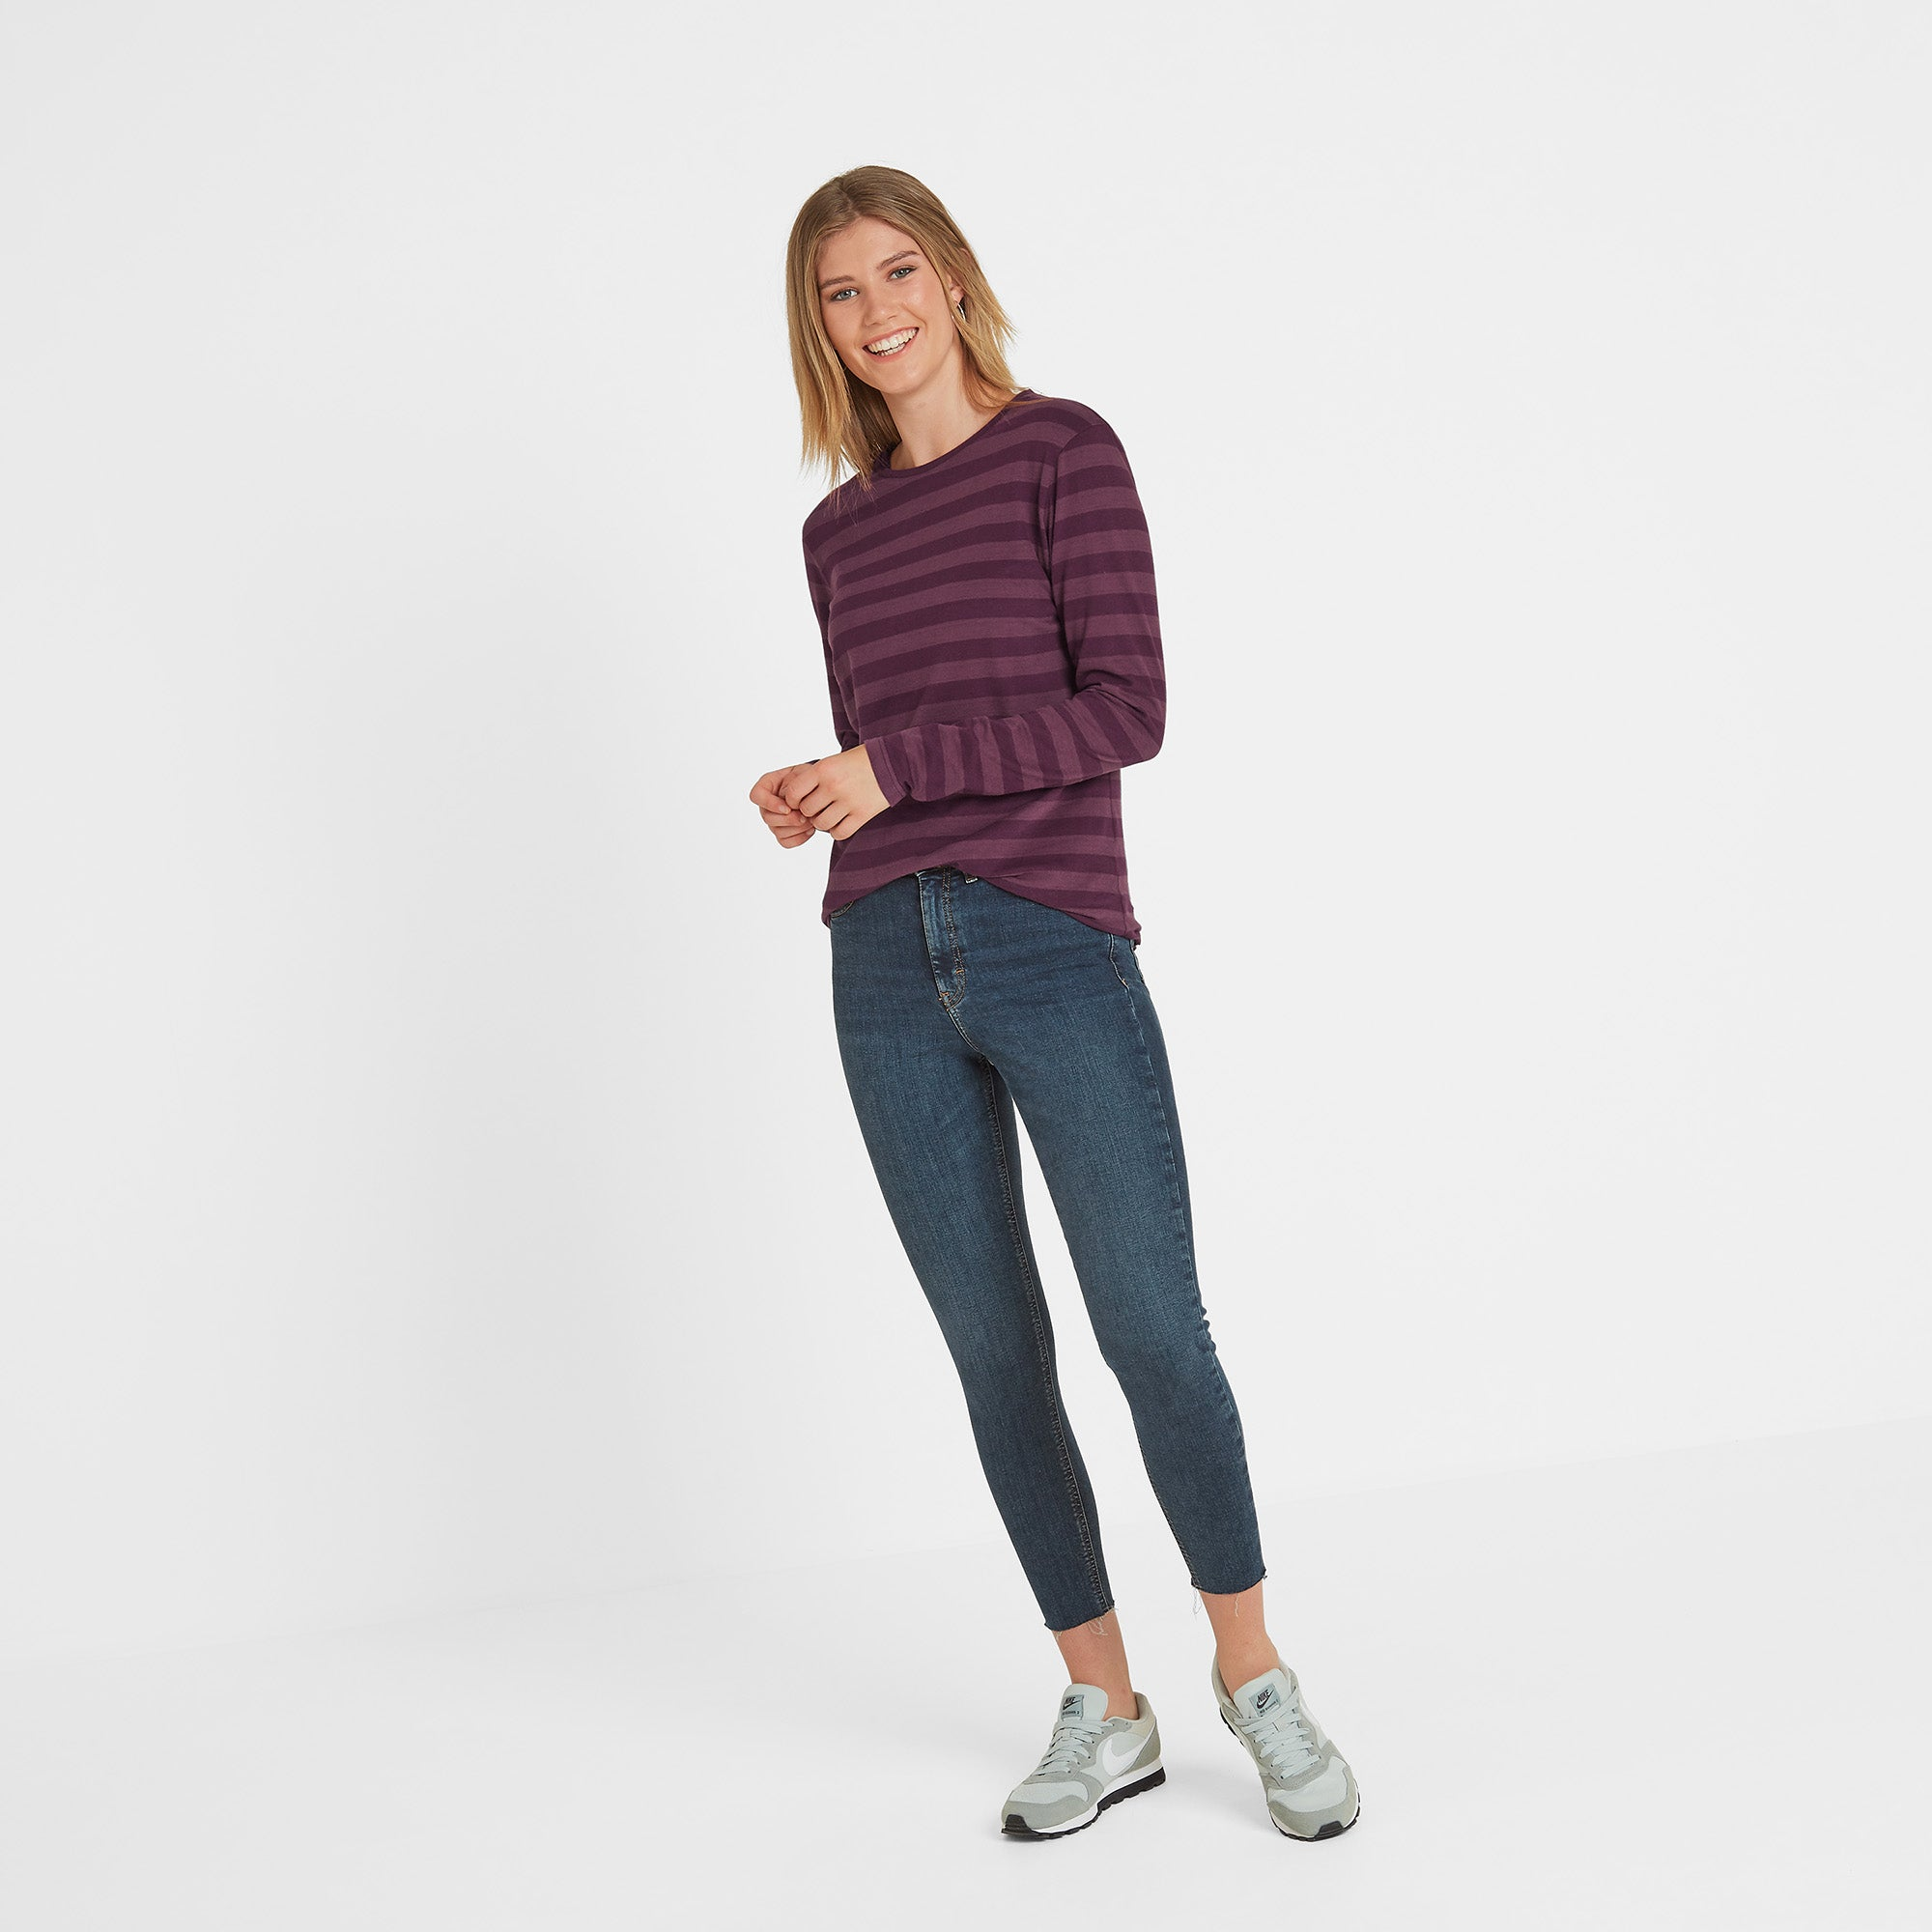 Holmfield Womens Long Sleeve Stripe T-Shirt - Aubergine